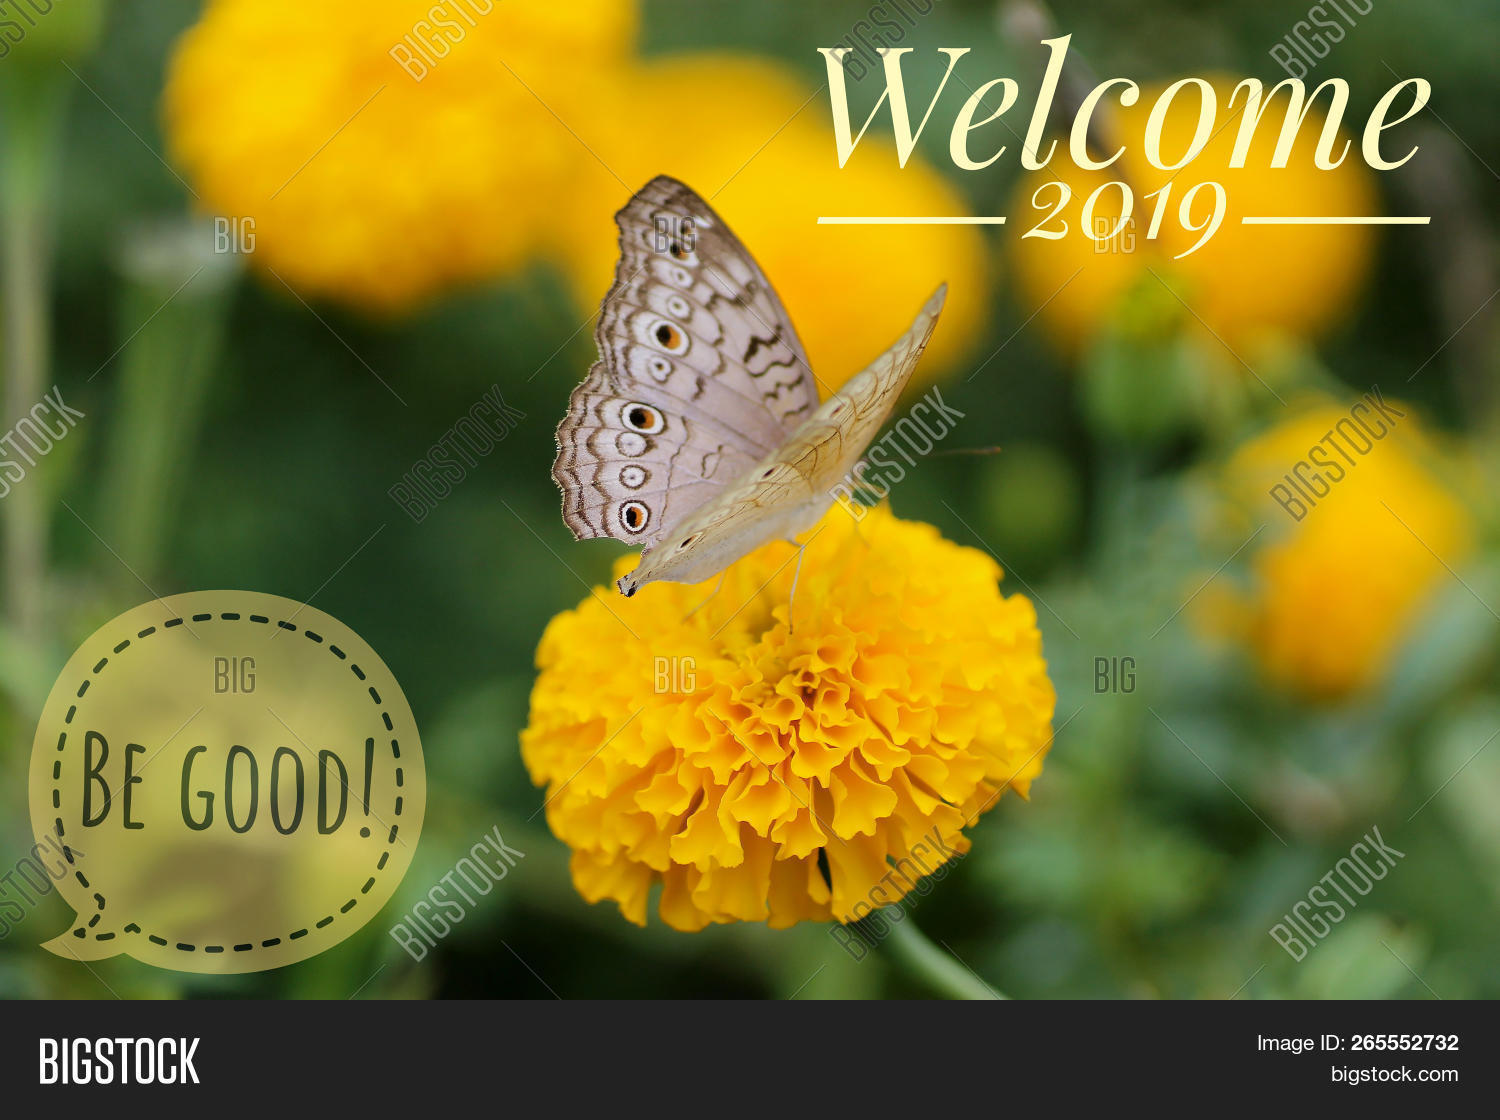 2018,2019,annual,background,banner,begood,blurry,bokeh,calendar,card,celebrate,celebration,christmas,concept,creative,date,december,design,end,eve,event,flower,fly,flyer,font,graphic,green,greeting,happy,hello,holiday,inspirational,invitation,land,marigold,merry,modern,nature,new,party,poster,season,start,style,symbol,text,welcome,xmas,year,yellow